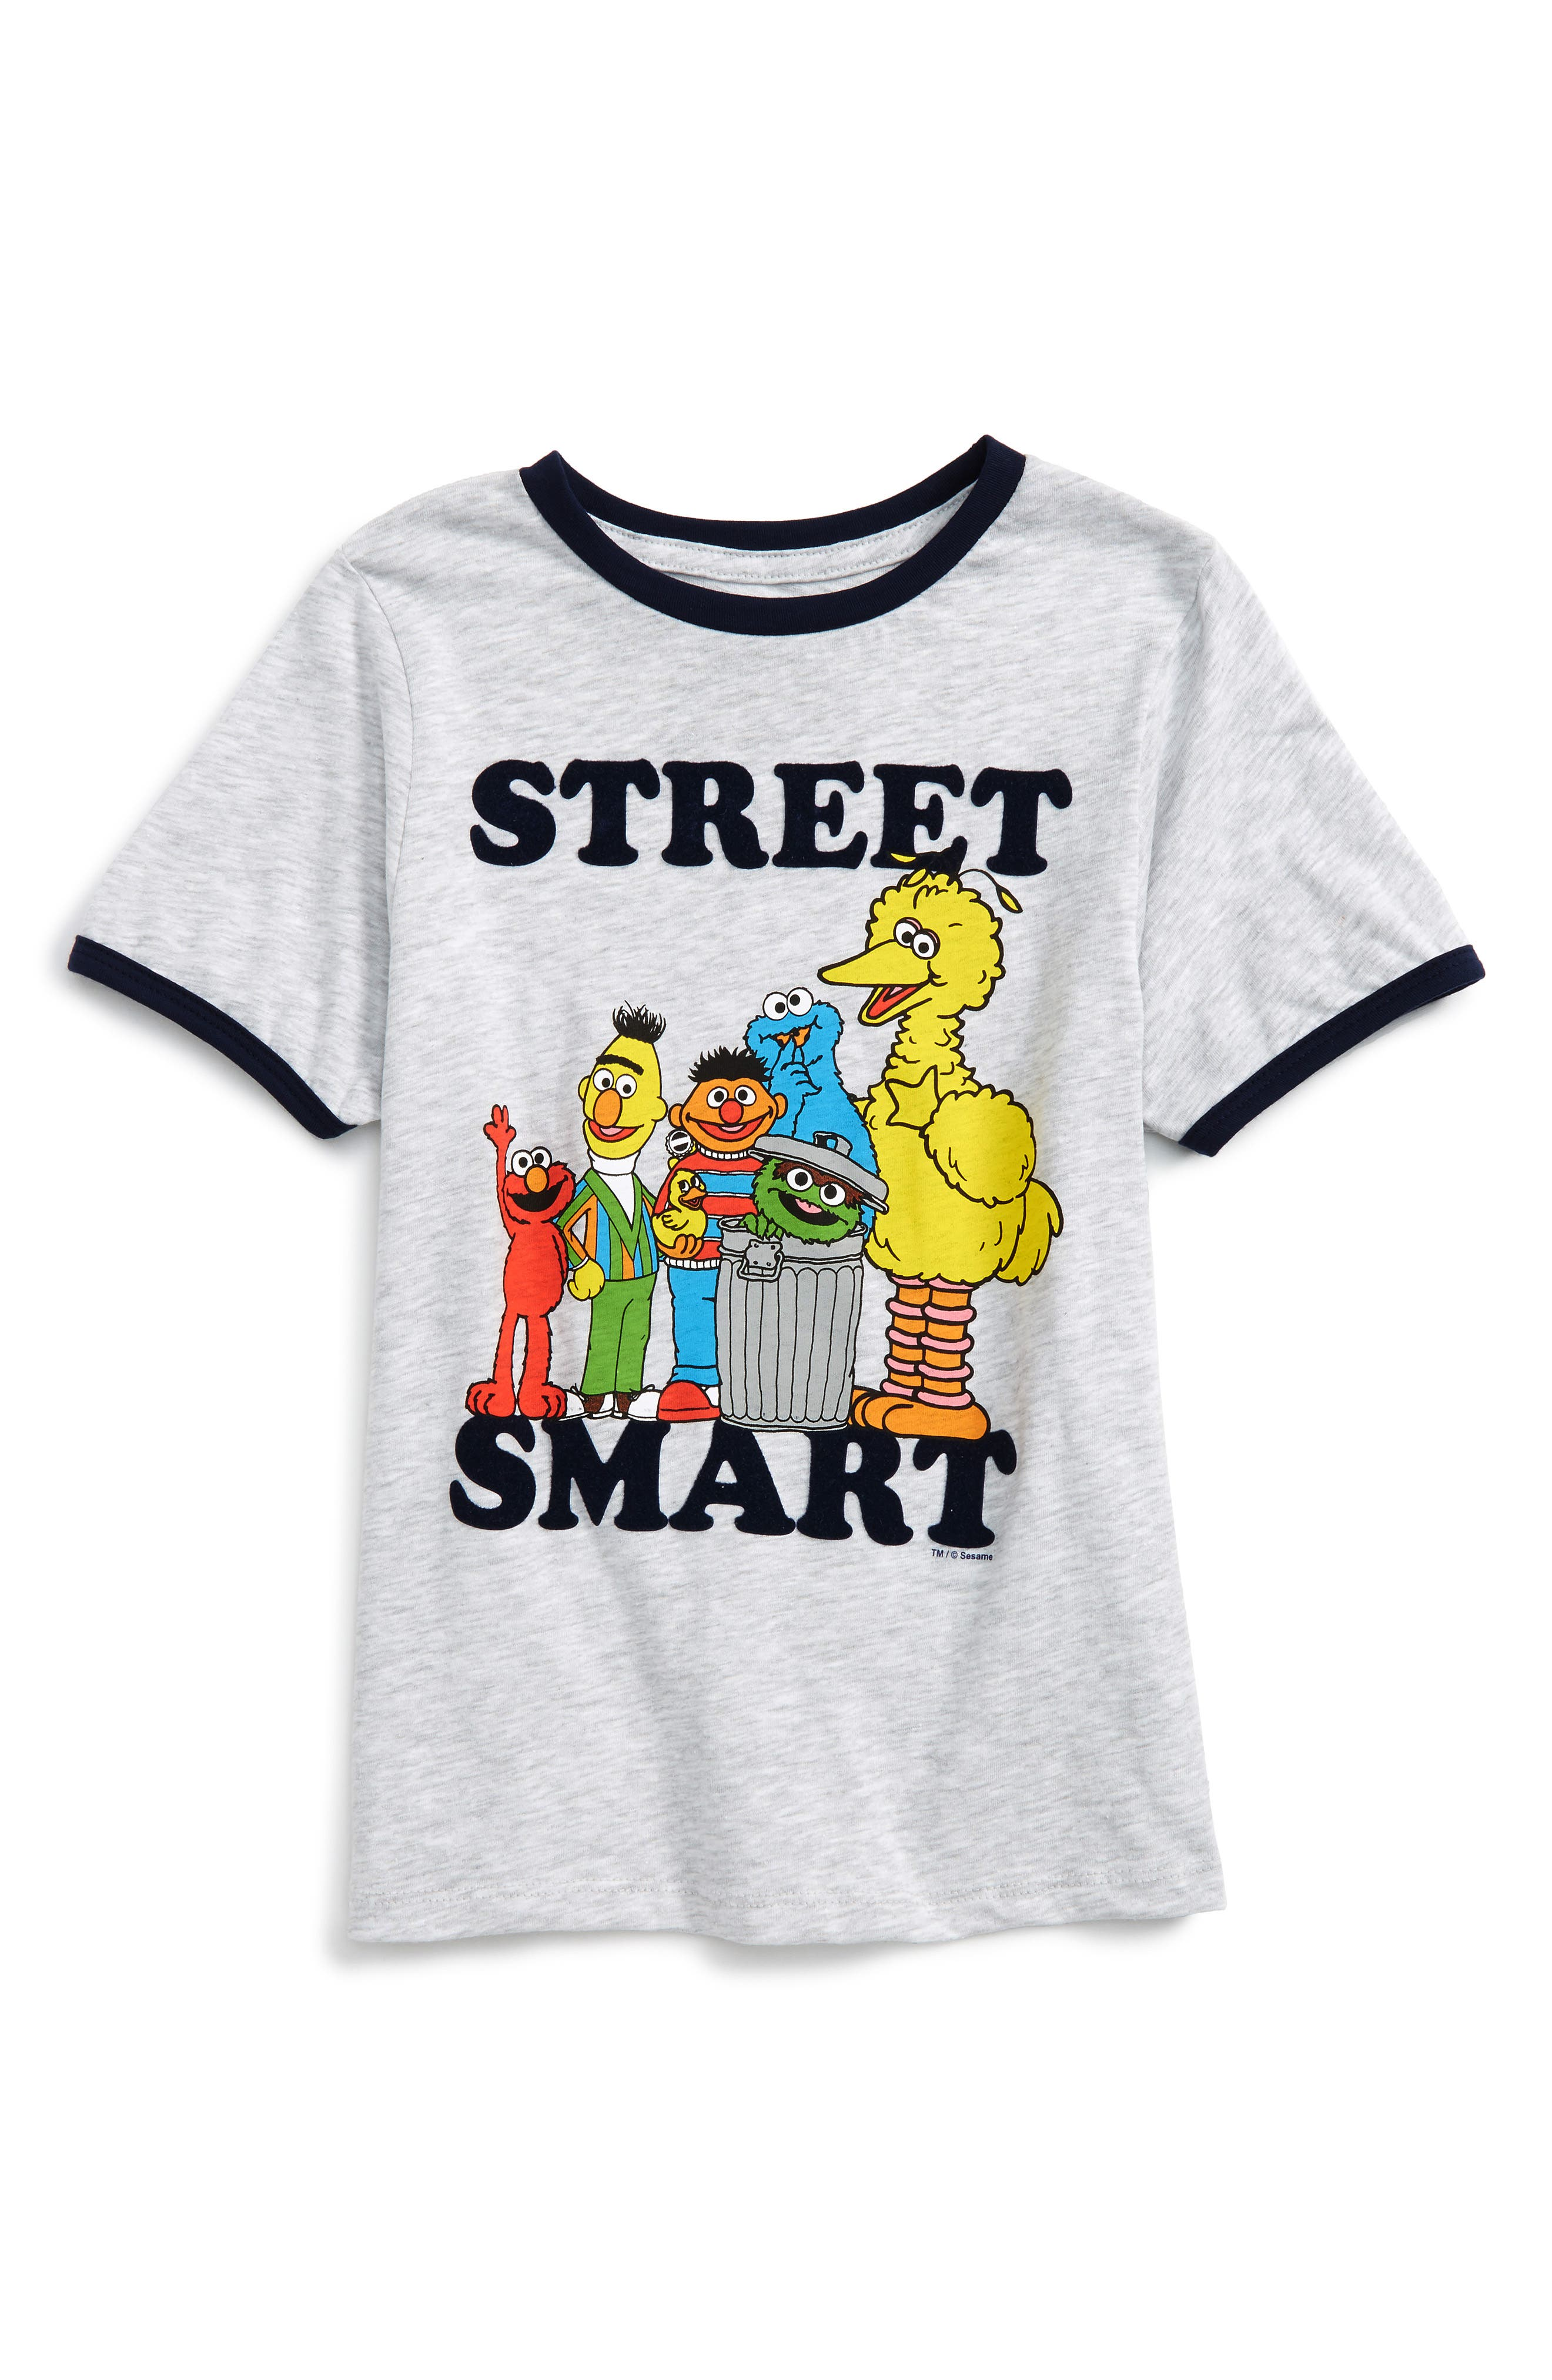 Mighty Fine x Sesame Street® Street Smart T-Shirt (Toddler Boys & Little Boys)